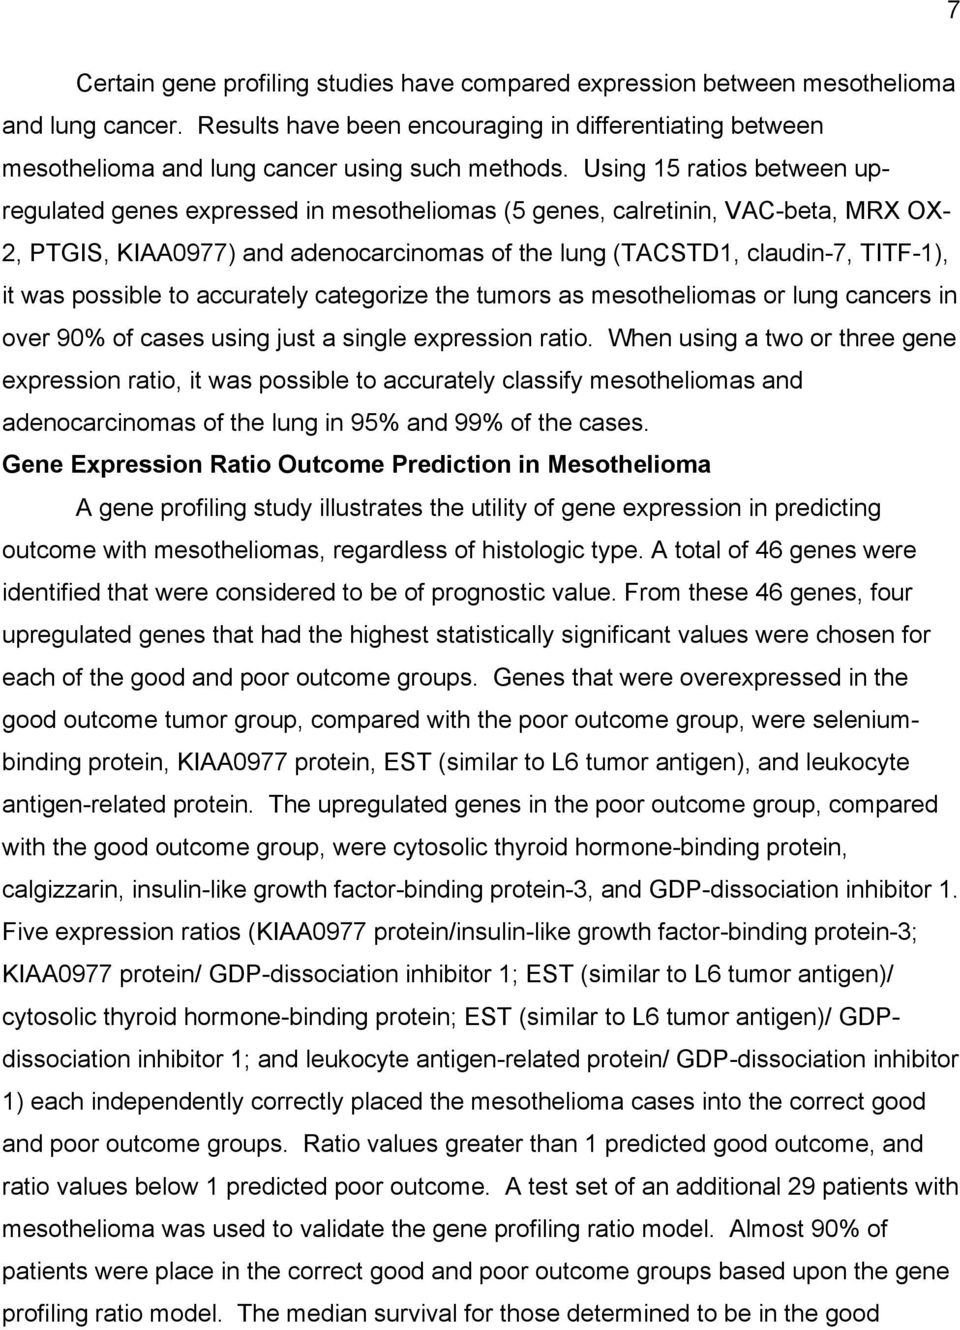 Using 15 ratios between upregulated genes expressed in mesotheliomas (5 genes, calretinin, VAC-beta, MRX OX- 2, PTGIS, KIAA0977) and adenocarcinomas of the lung (TACSTD1, claudin-7, TITF-1), it was